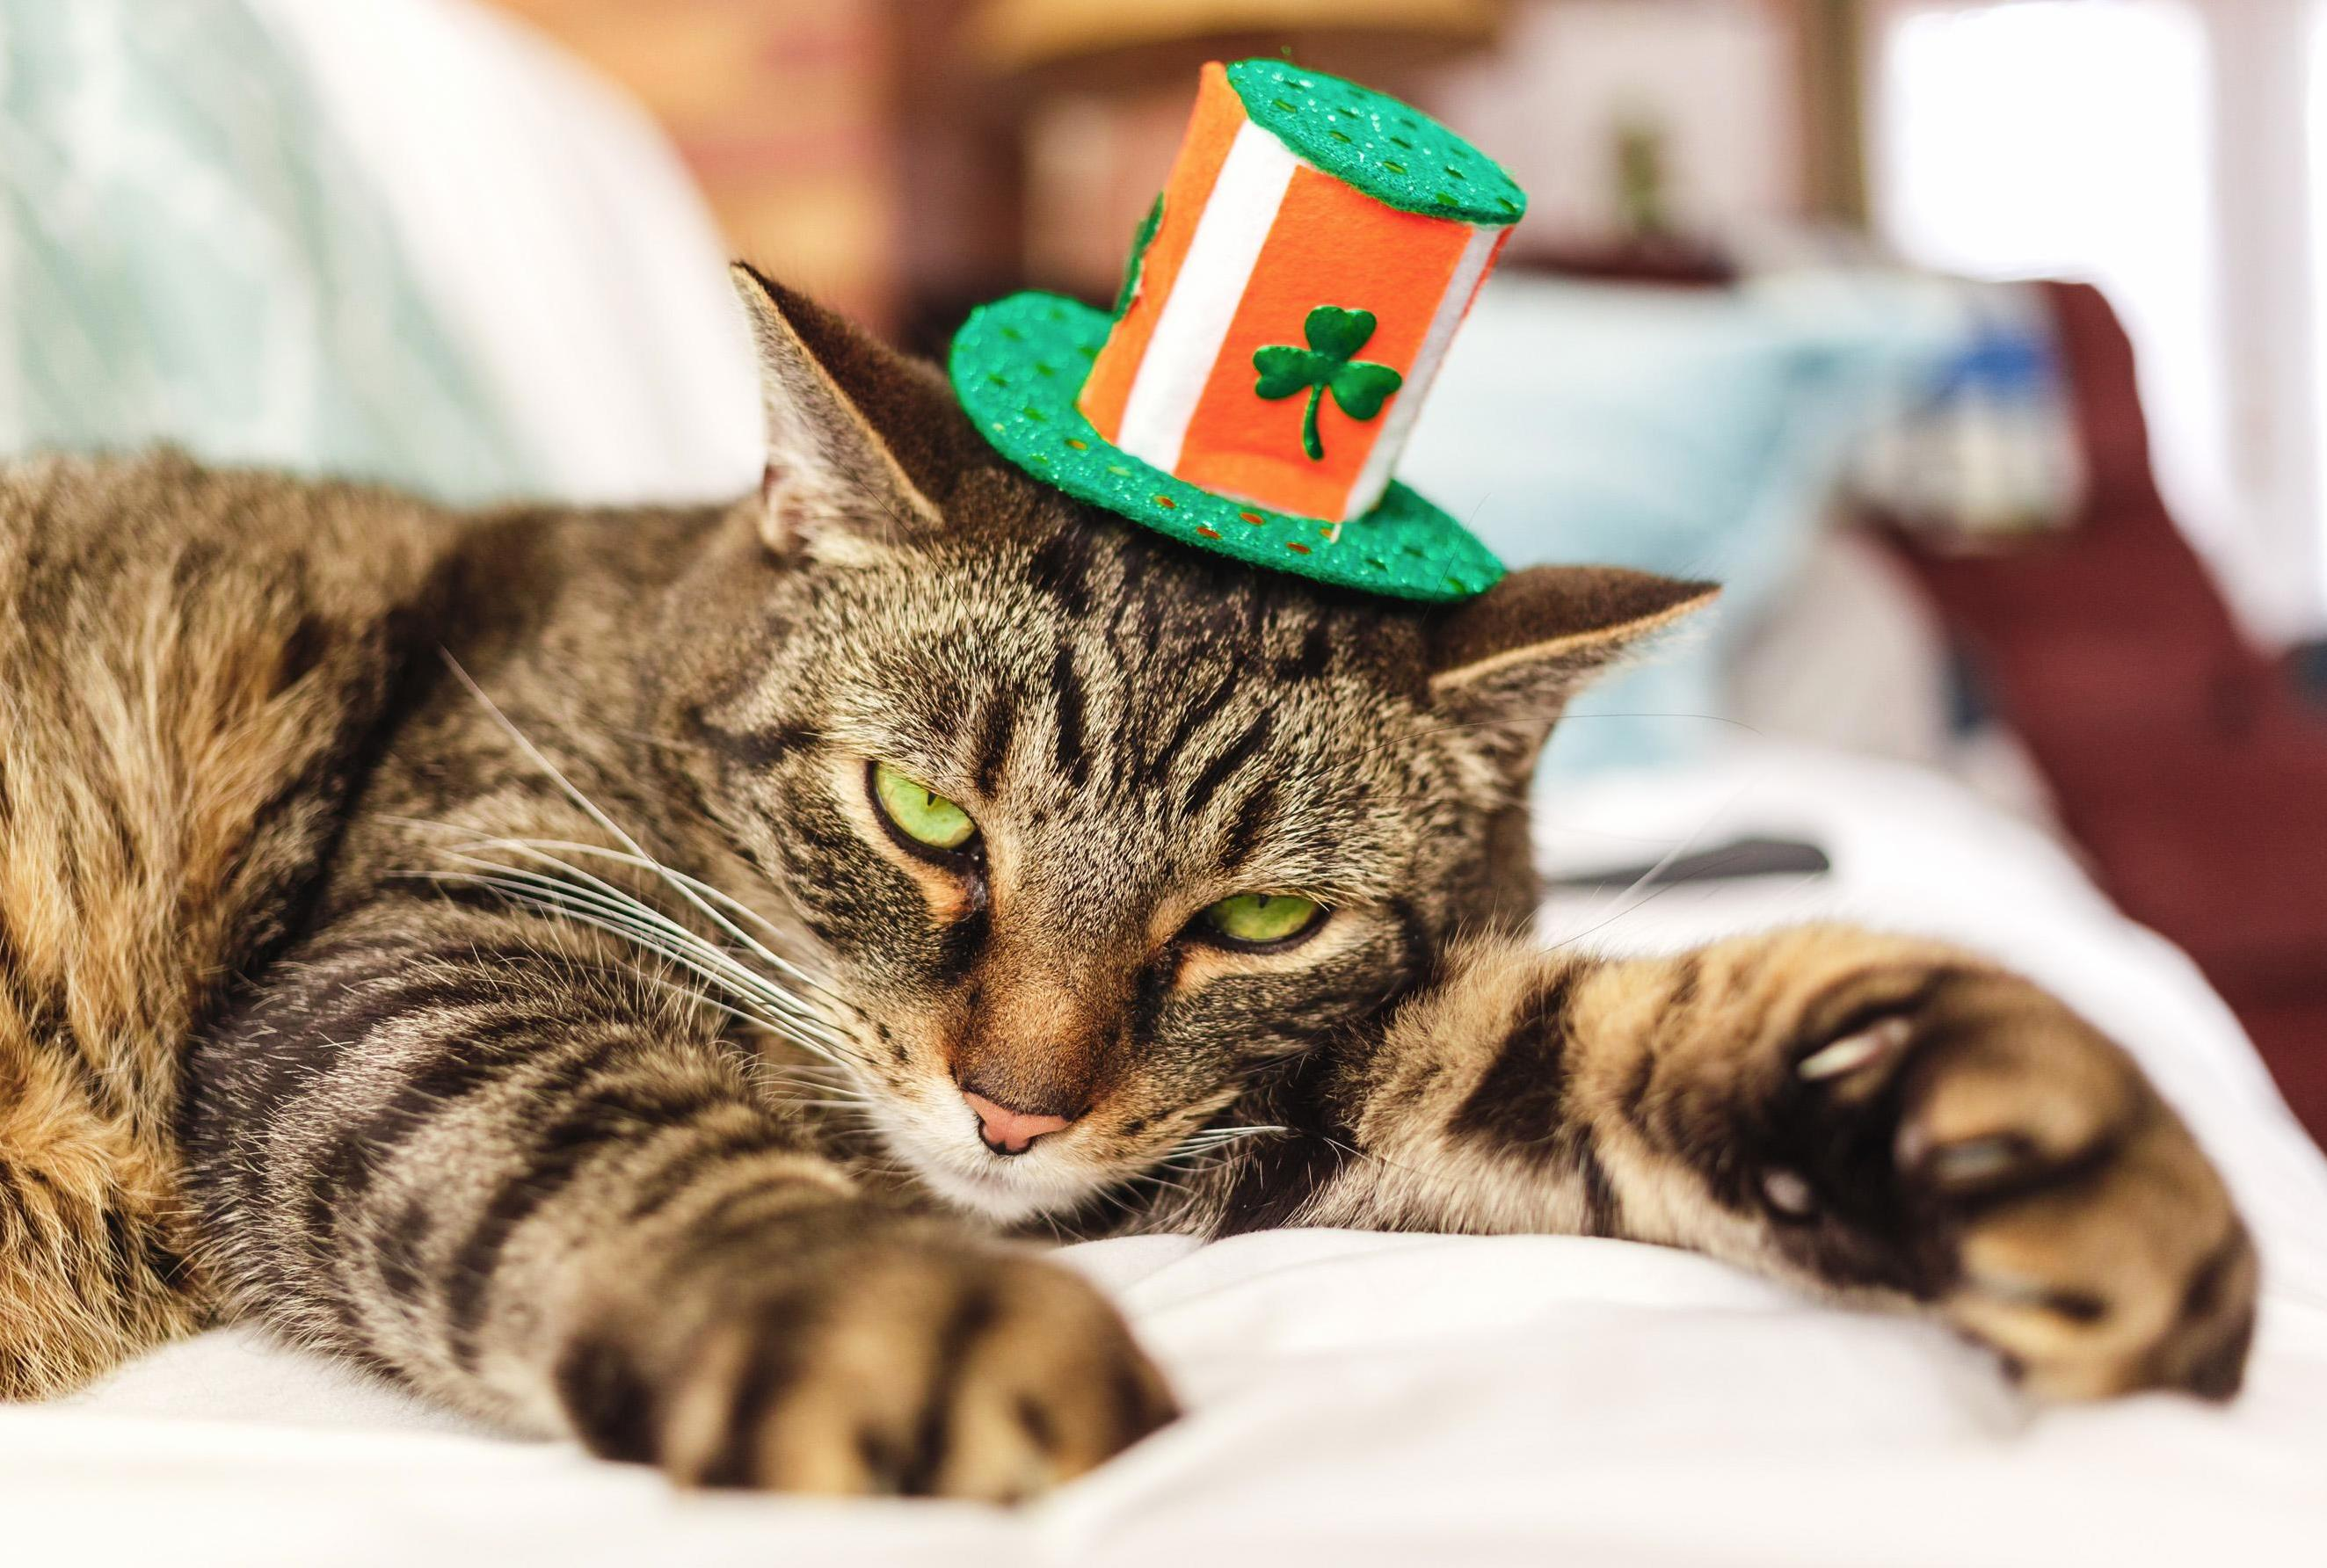 Jack is celebrating his irish heritage.